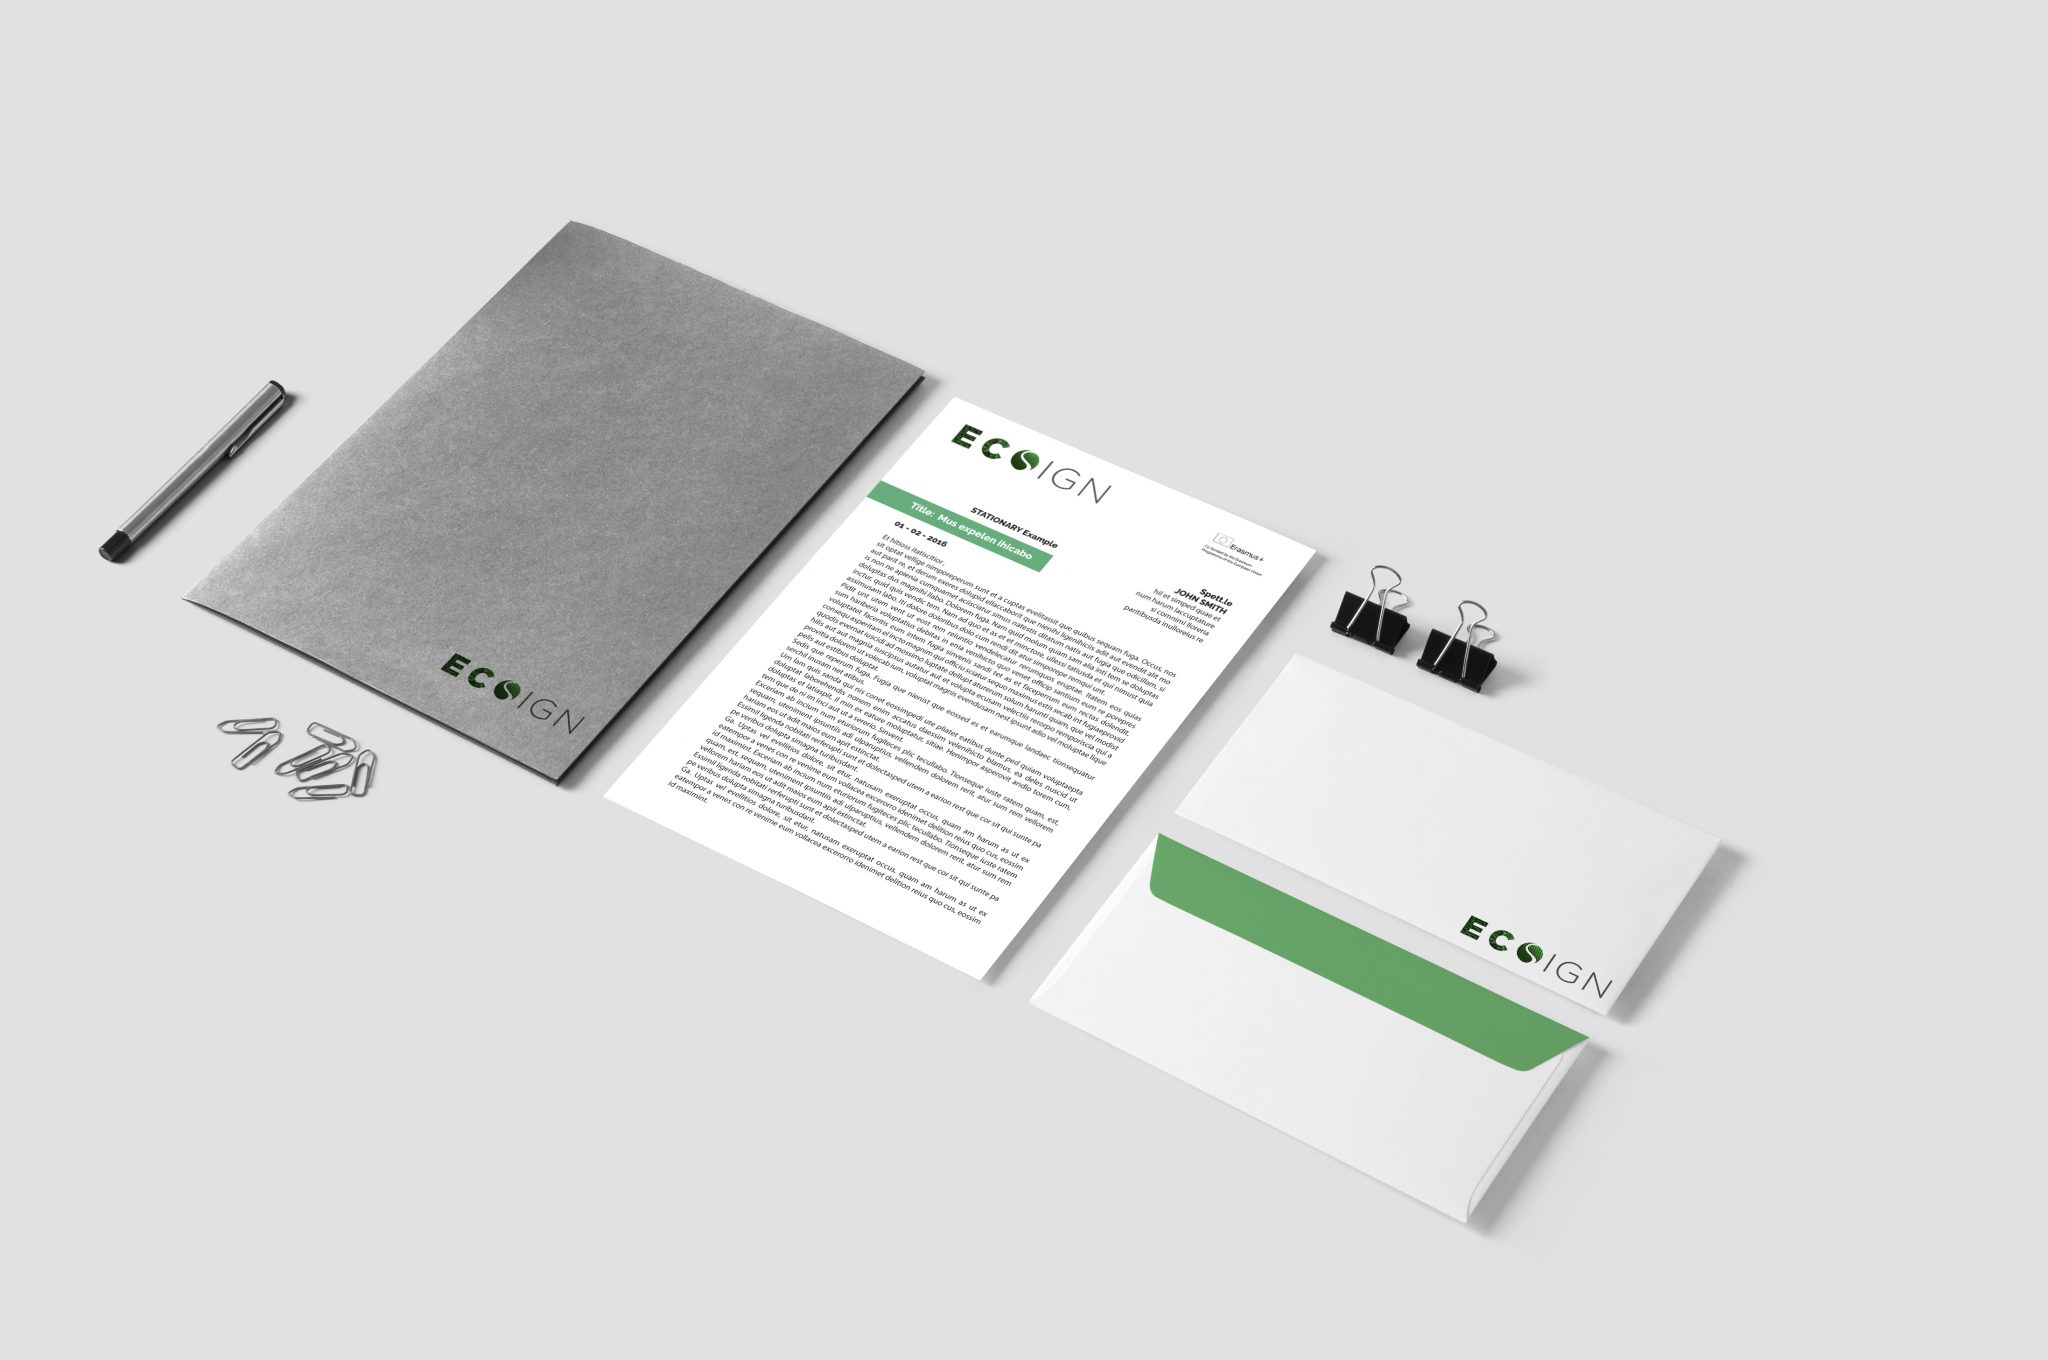 stationery_ecosign